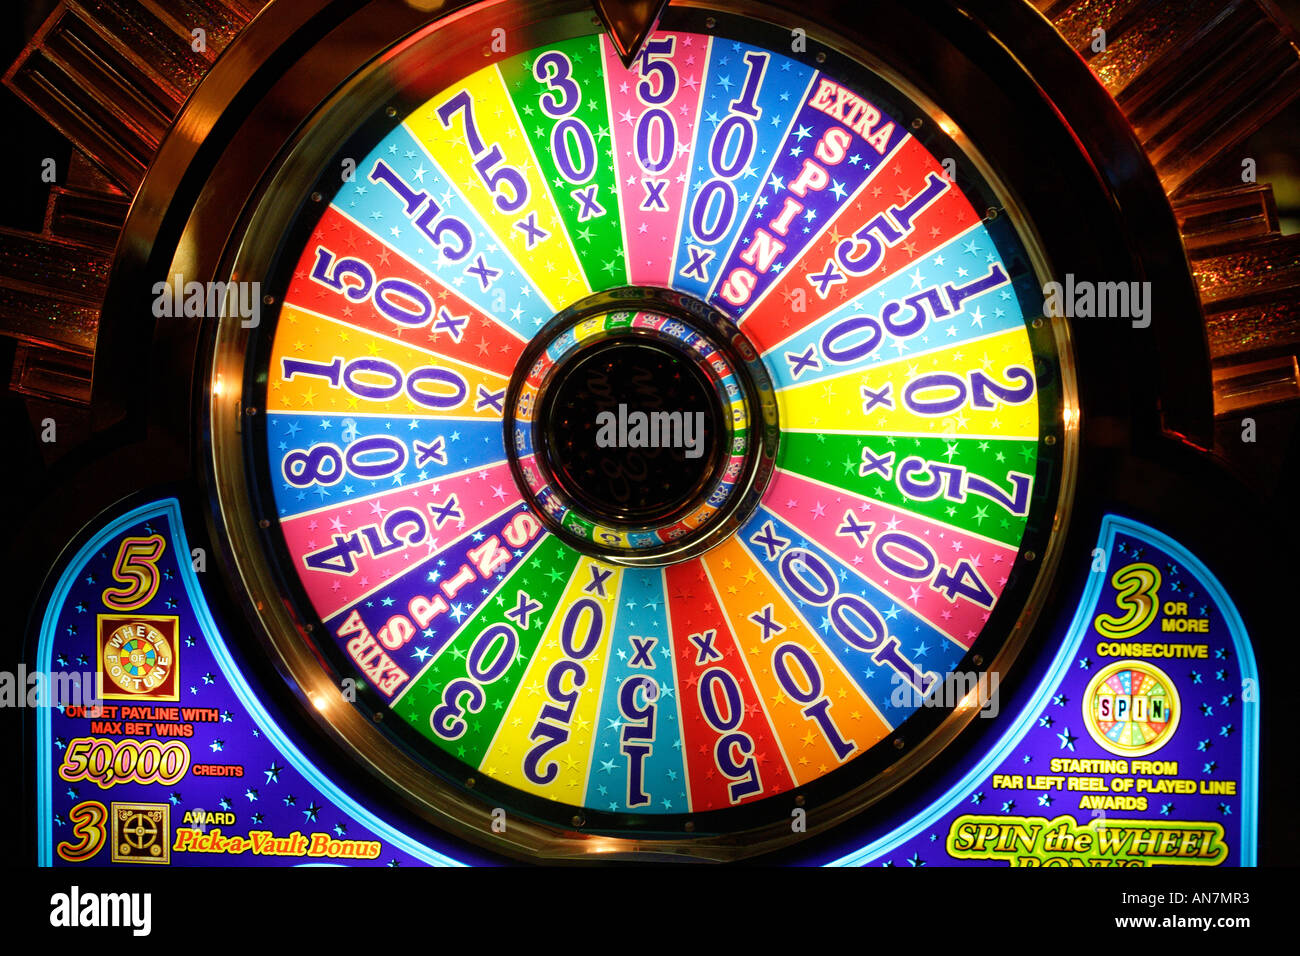 Wheel Of Fortune Casino Slot Machine